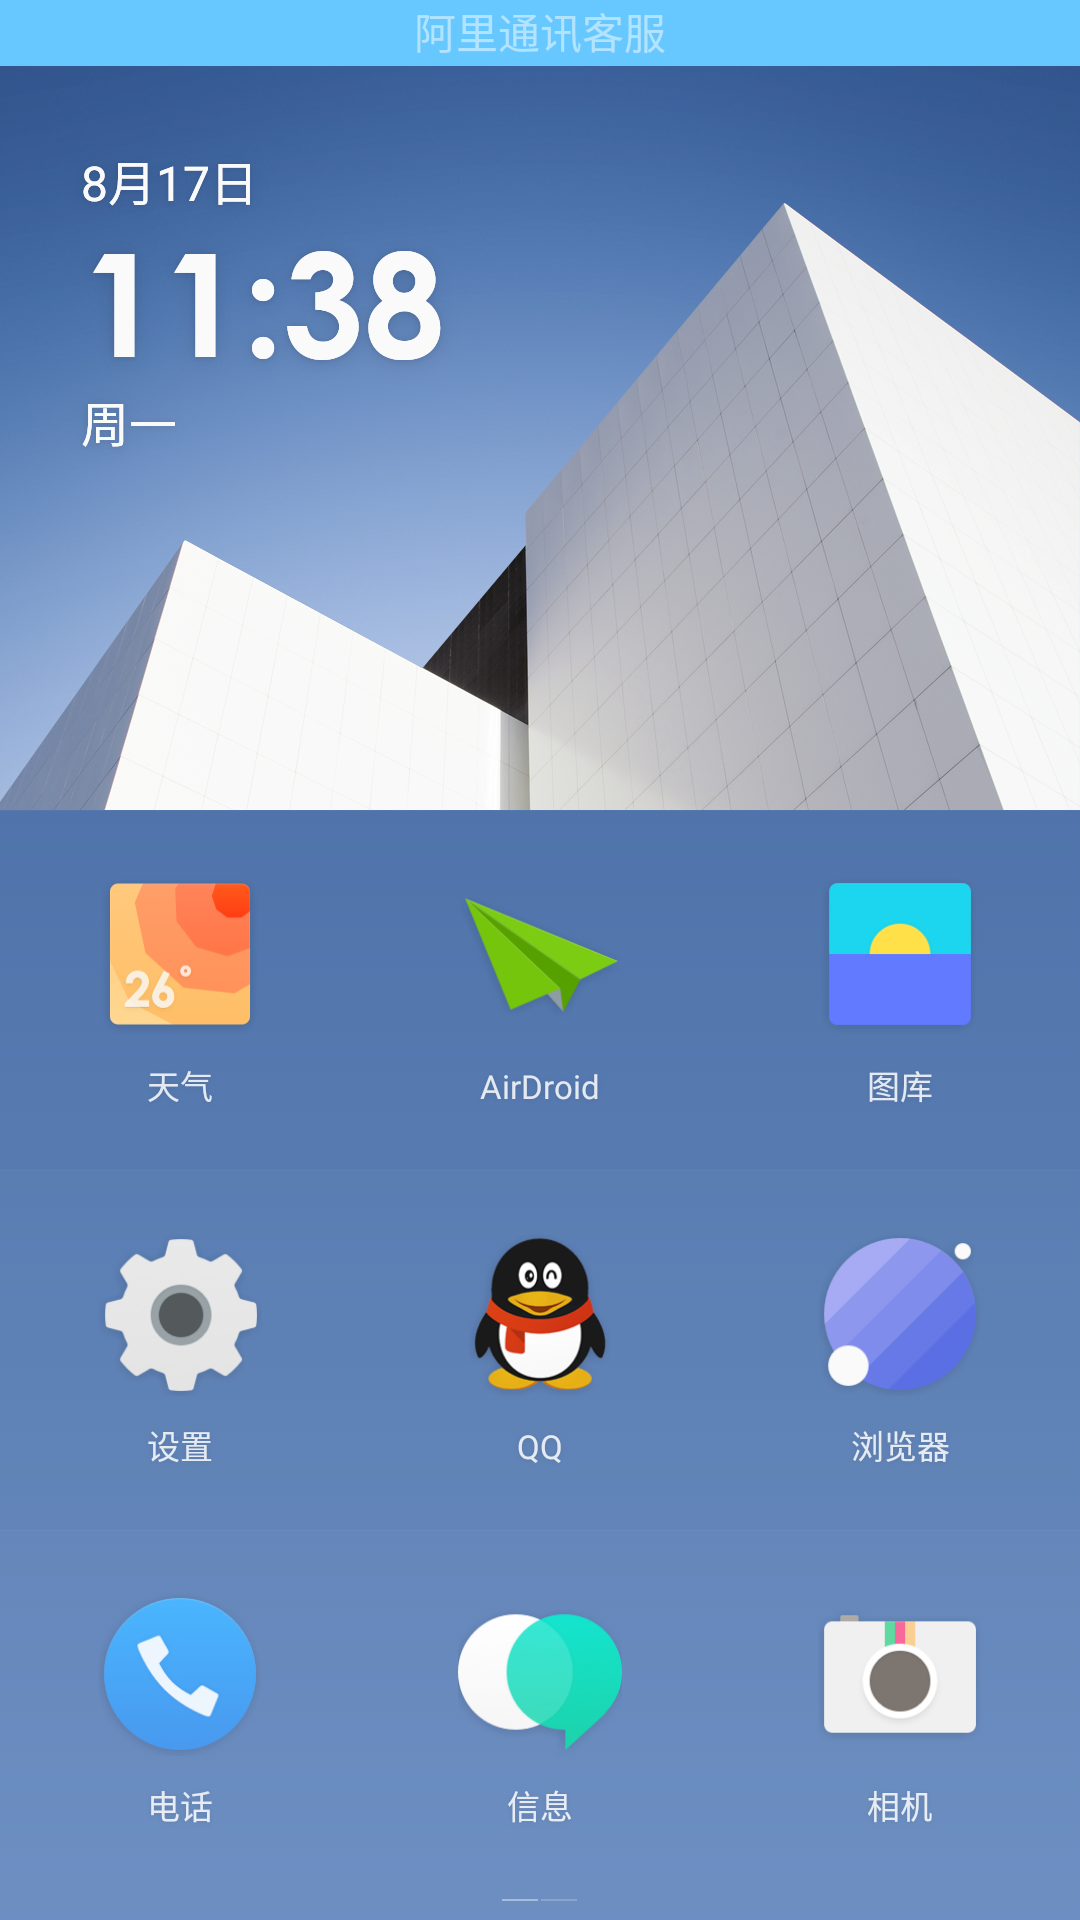 Screenshot_2015-08-17-11-38-44.png